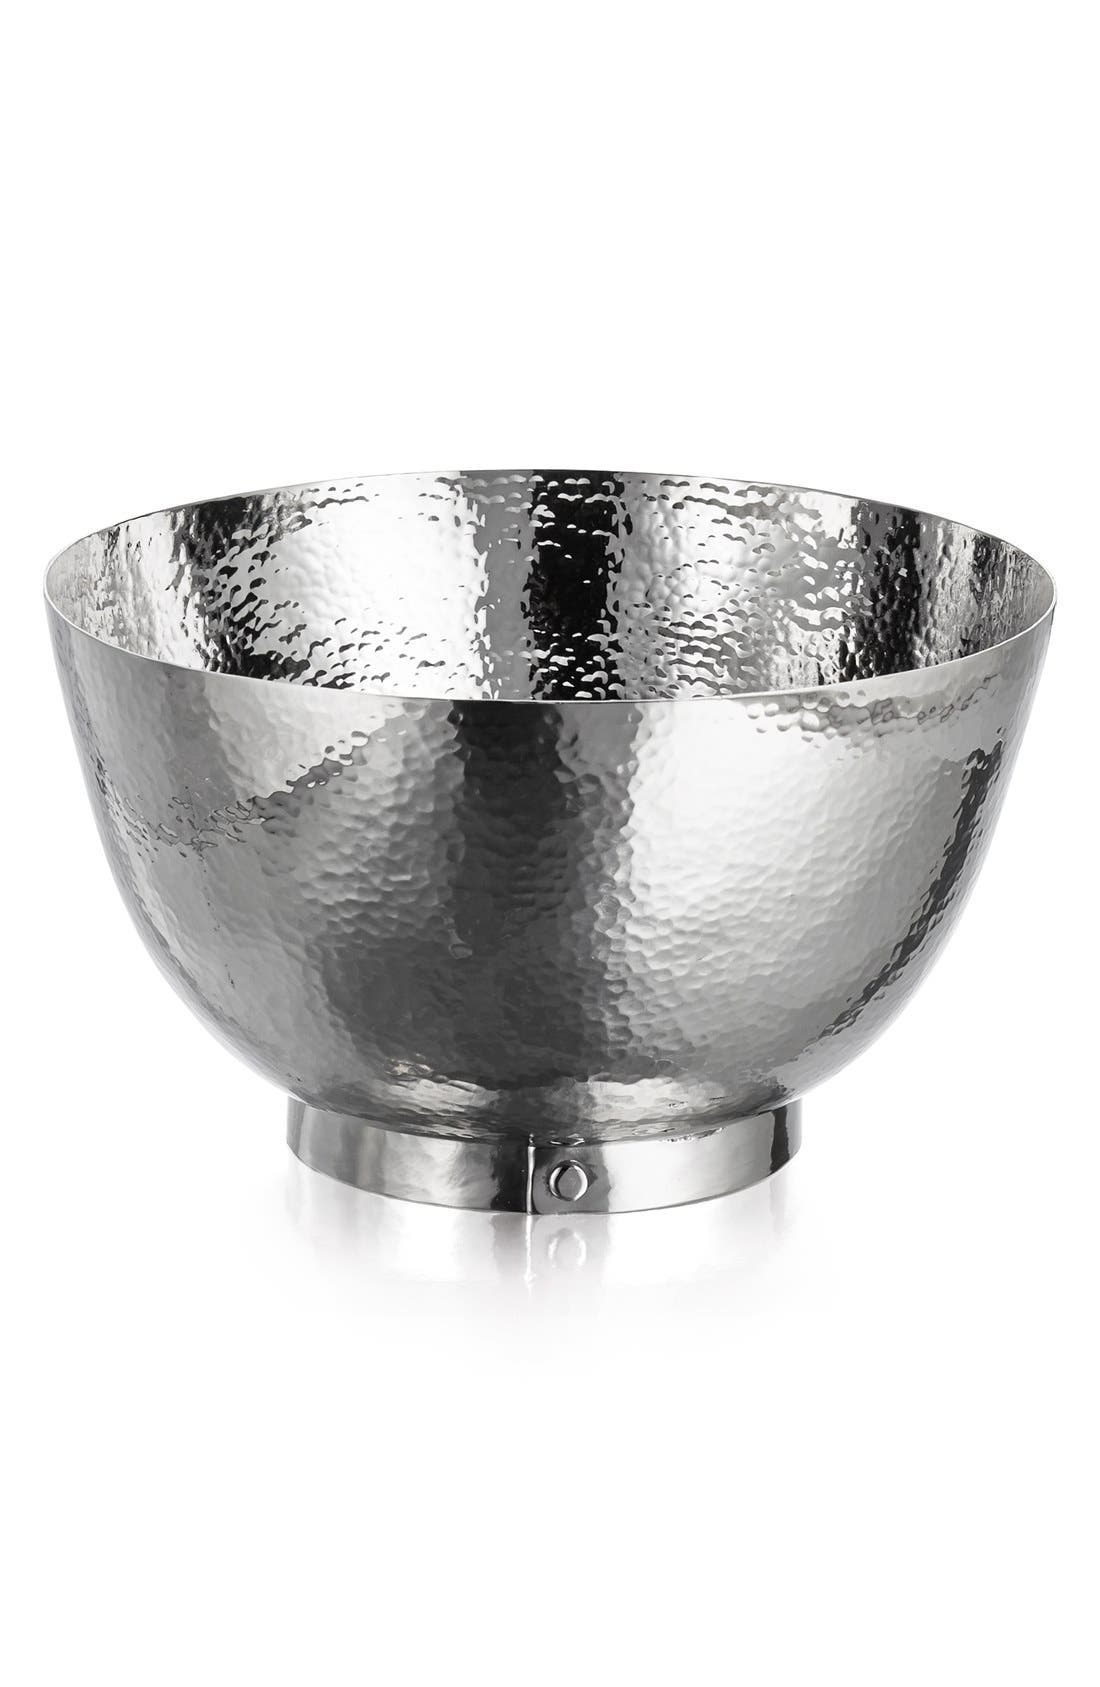 Alternate Image 1 Selected - Michael Aram 'Rivet' Hammered Stainless Steel Bowl